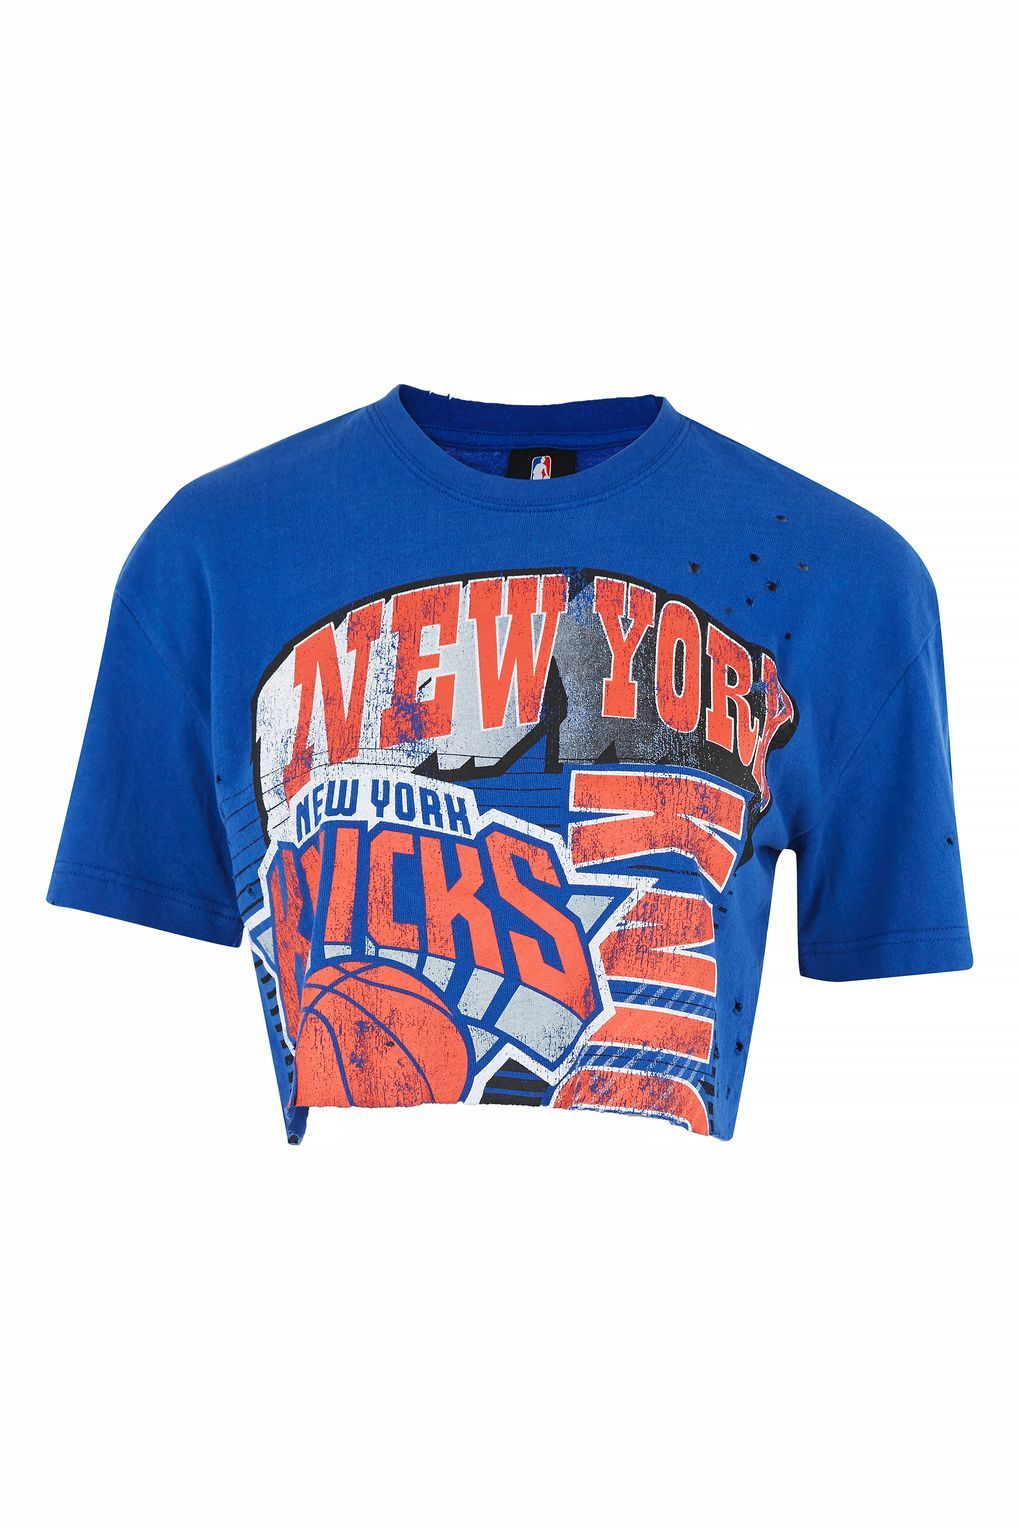 c8a2d94d685 New York Knicks Crop Top by UNK X in 2019